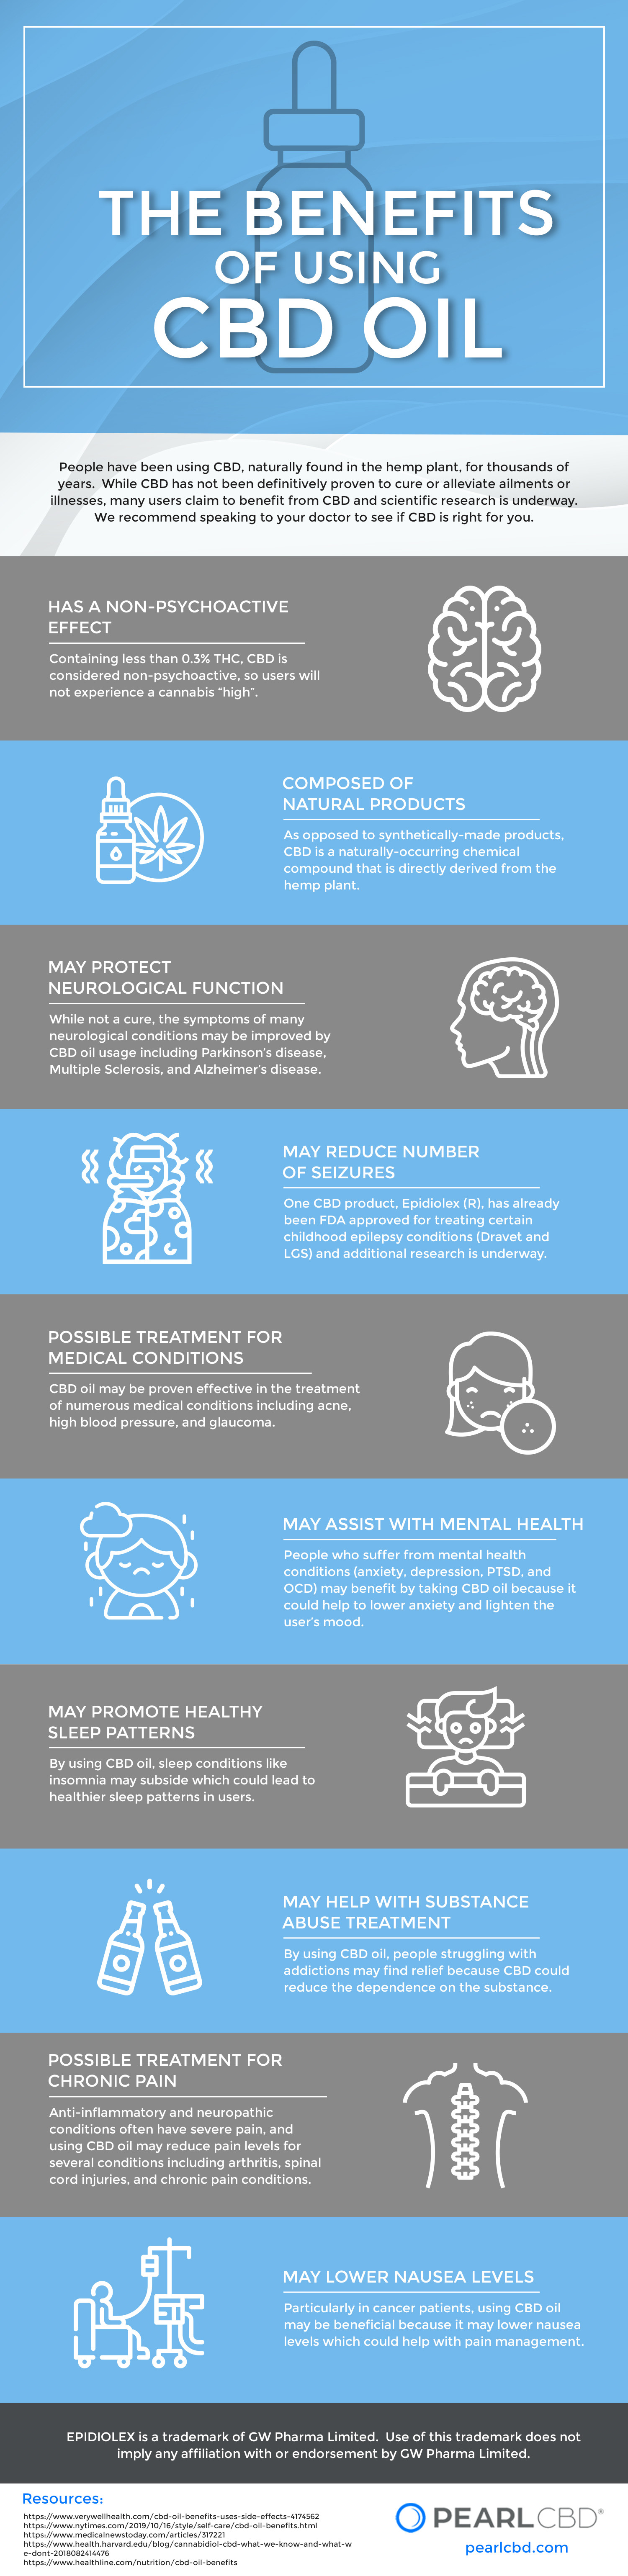 The Benefits Of Using CBD Oil Infographic